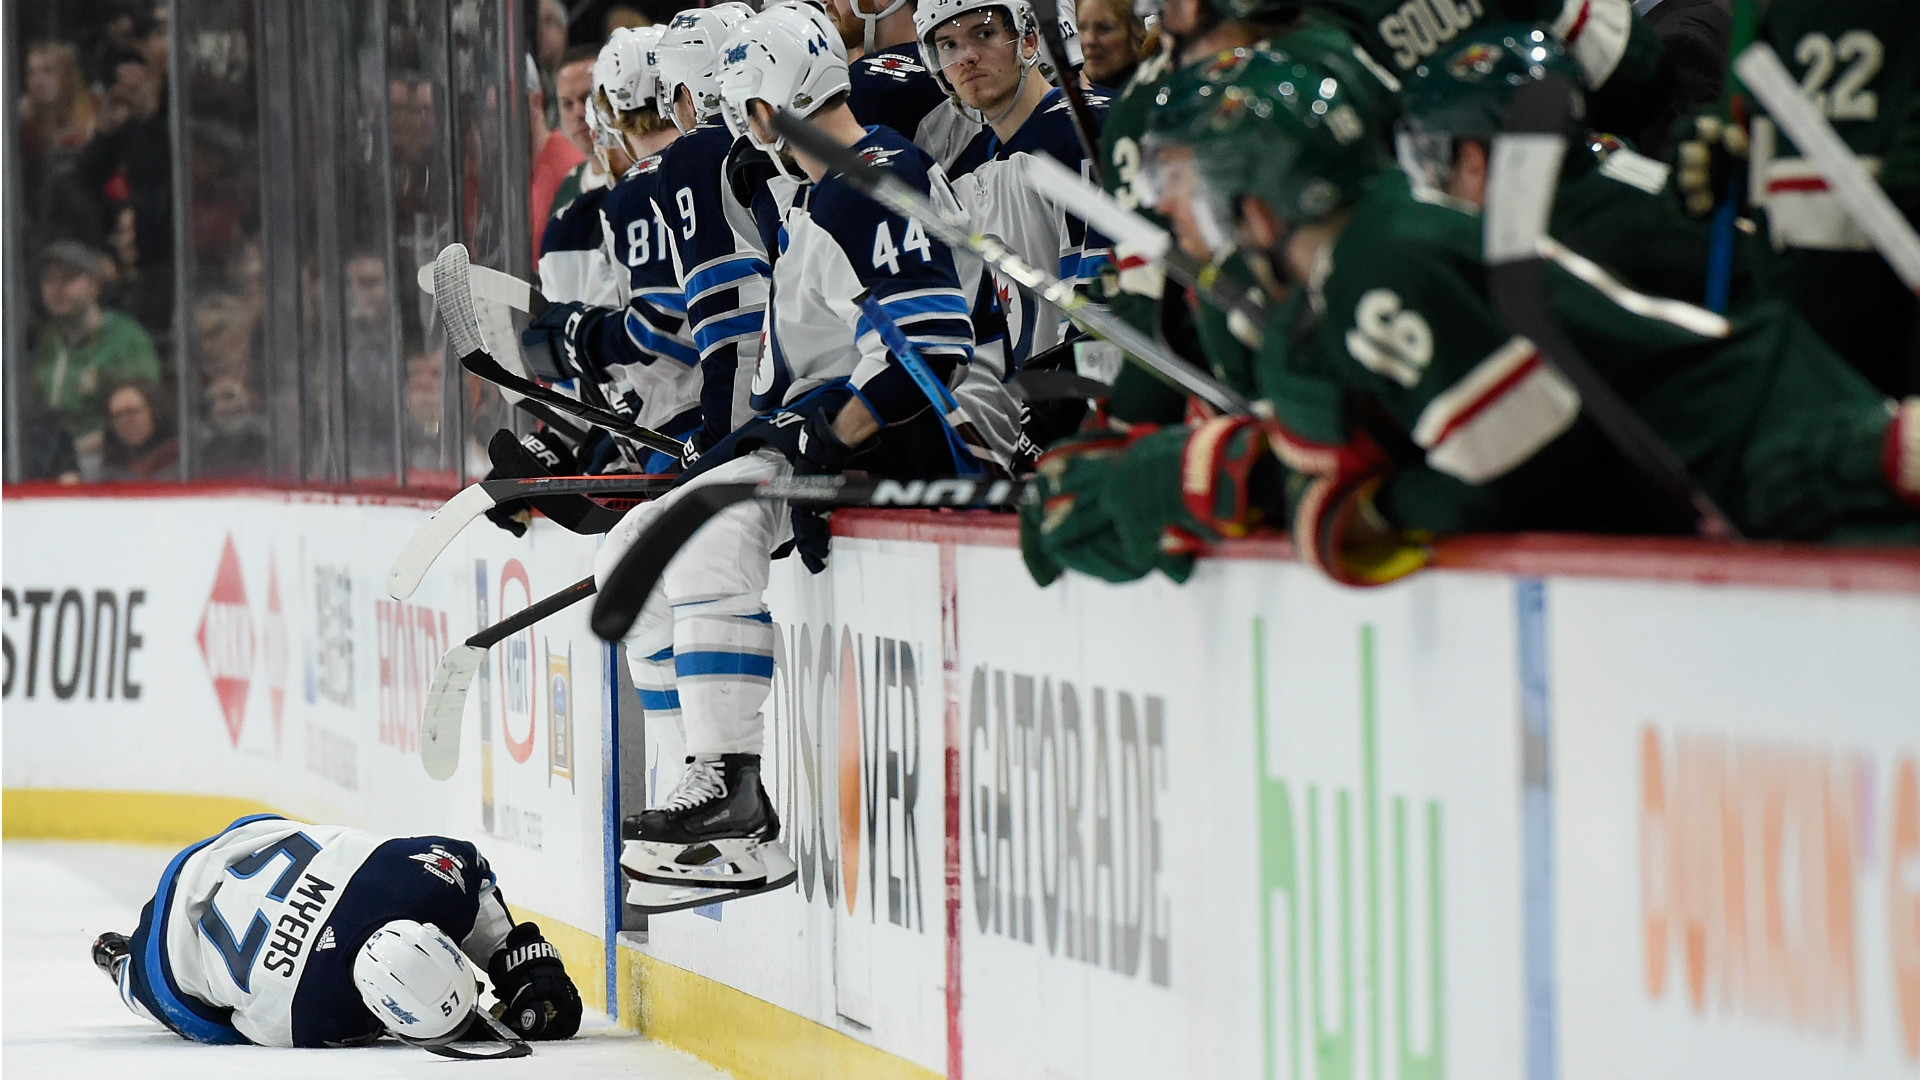 Parise's injury cuts Wild's scoring power, lose to Jets 2-0